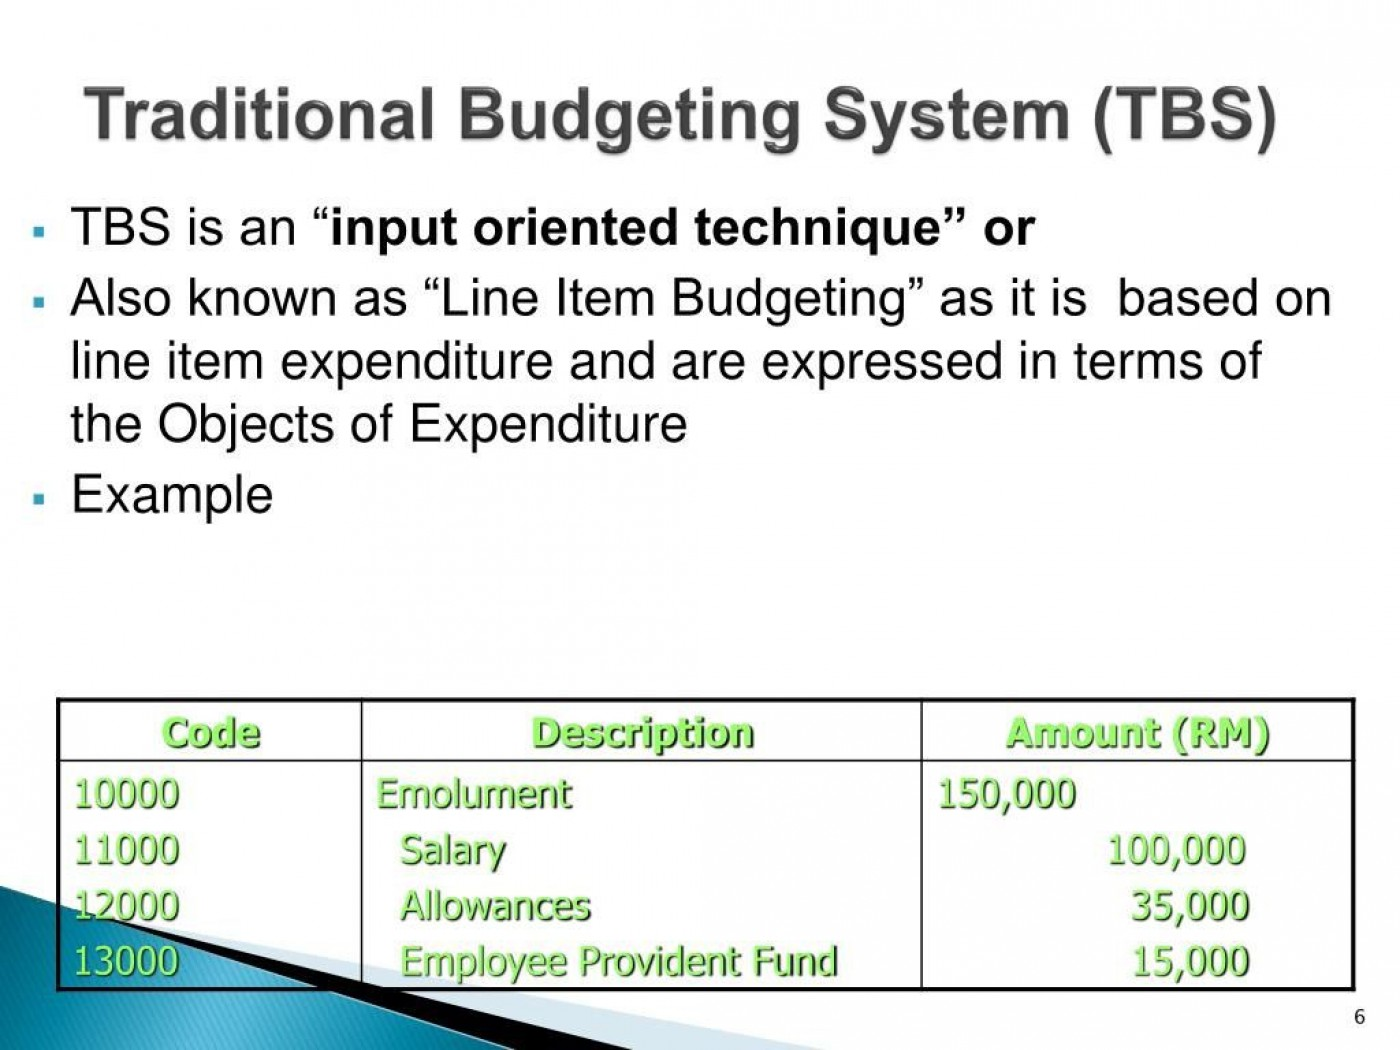 010 Incredible Line Item Budget Example  Format Meaning With1400